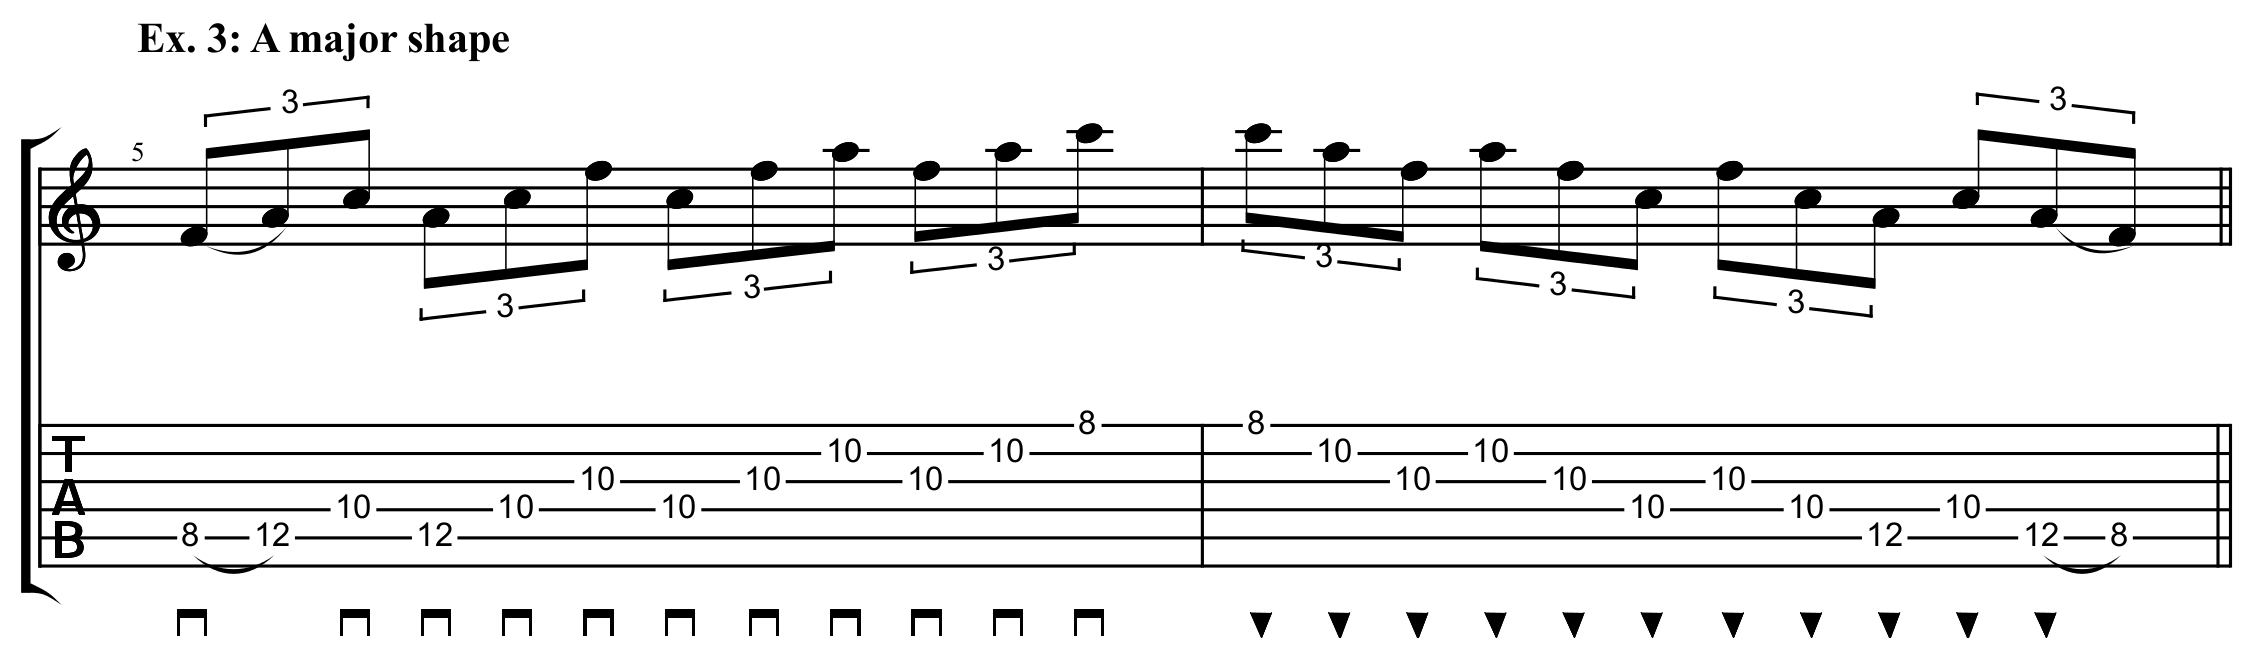 A major sweep arpeggio shape exercise for note definition